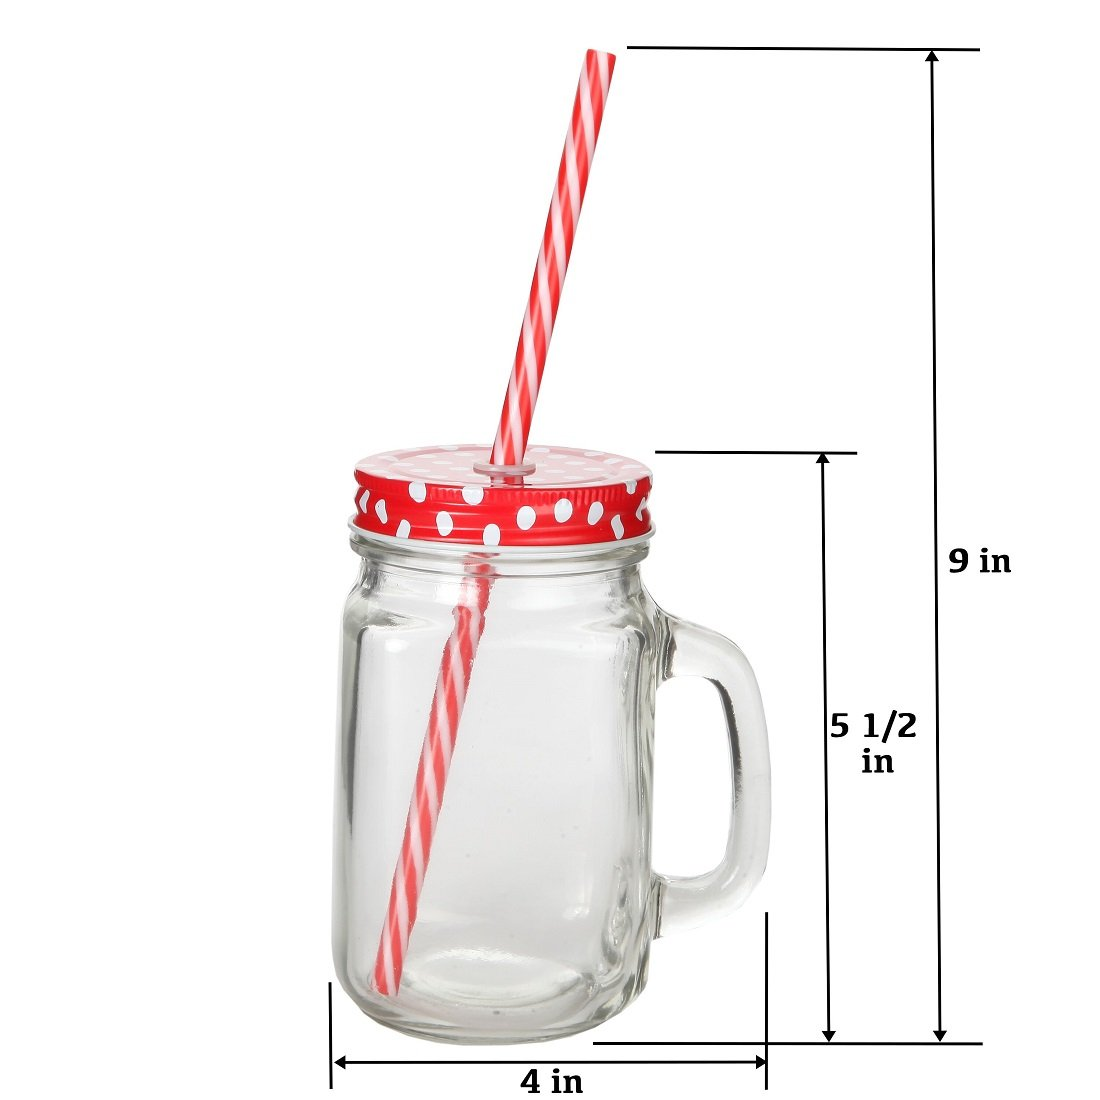 Lily's Home Old Fashioned Mason Jar Mugs with Handles, Polka Dot Lids and Matching Reusable Plastic Straws, Great as Old Fashion Drinking Glasses at BBQs and Parties, Clear (16 oz. Each, Set of 4) by Lilyshome (Image #5)